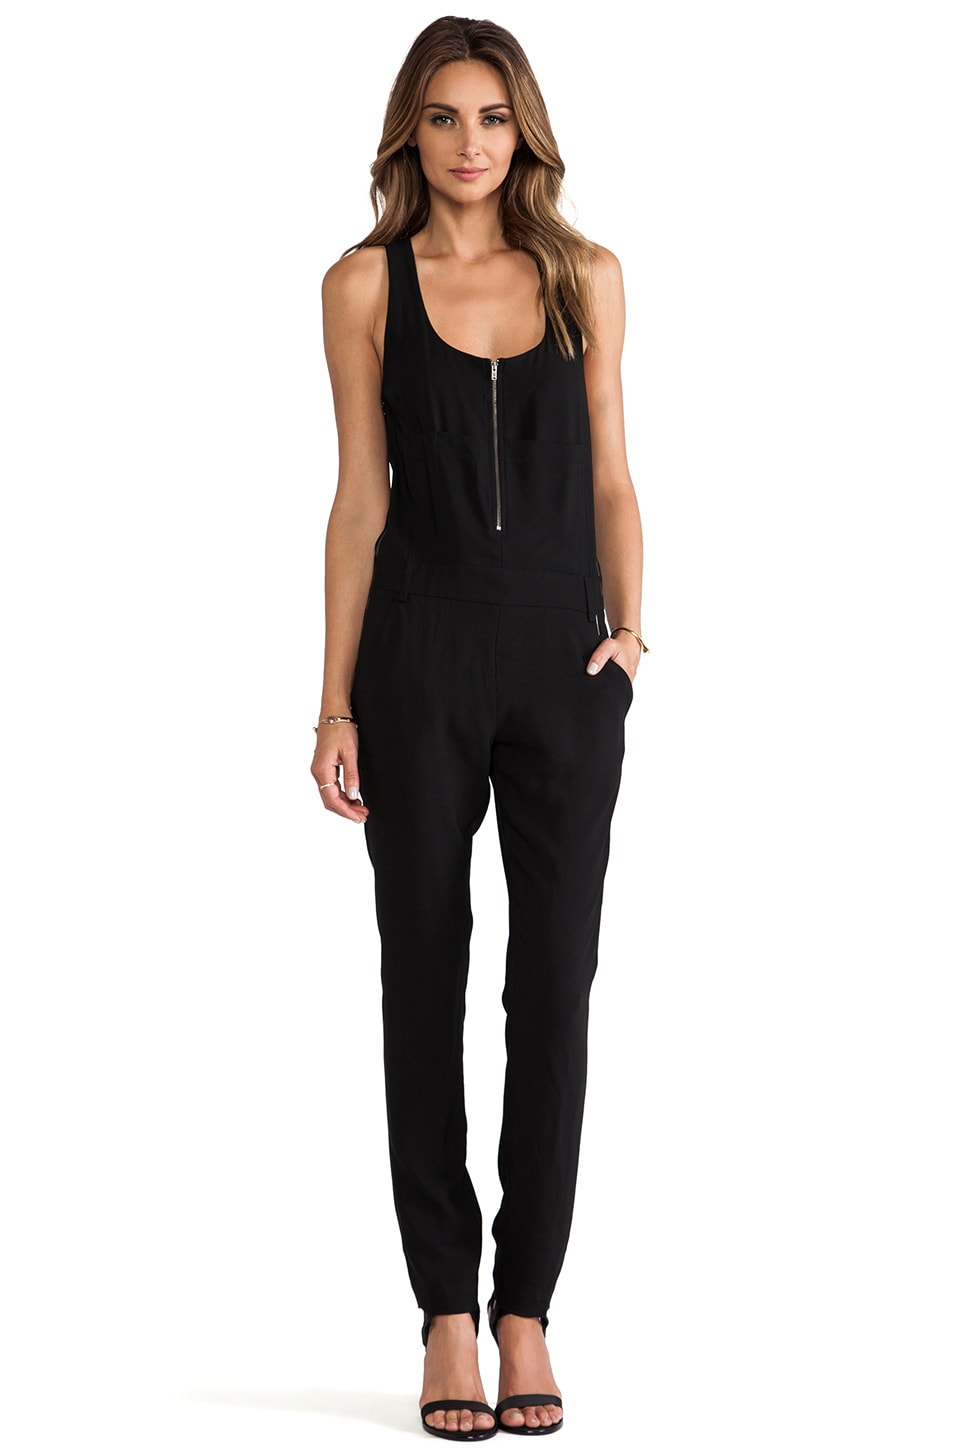 A.L.C. Georgia Jumpsuit in Black